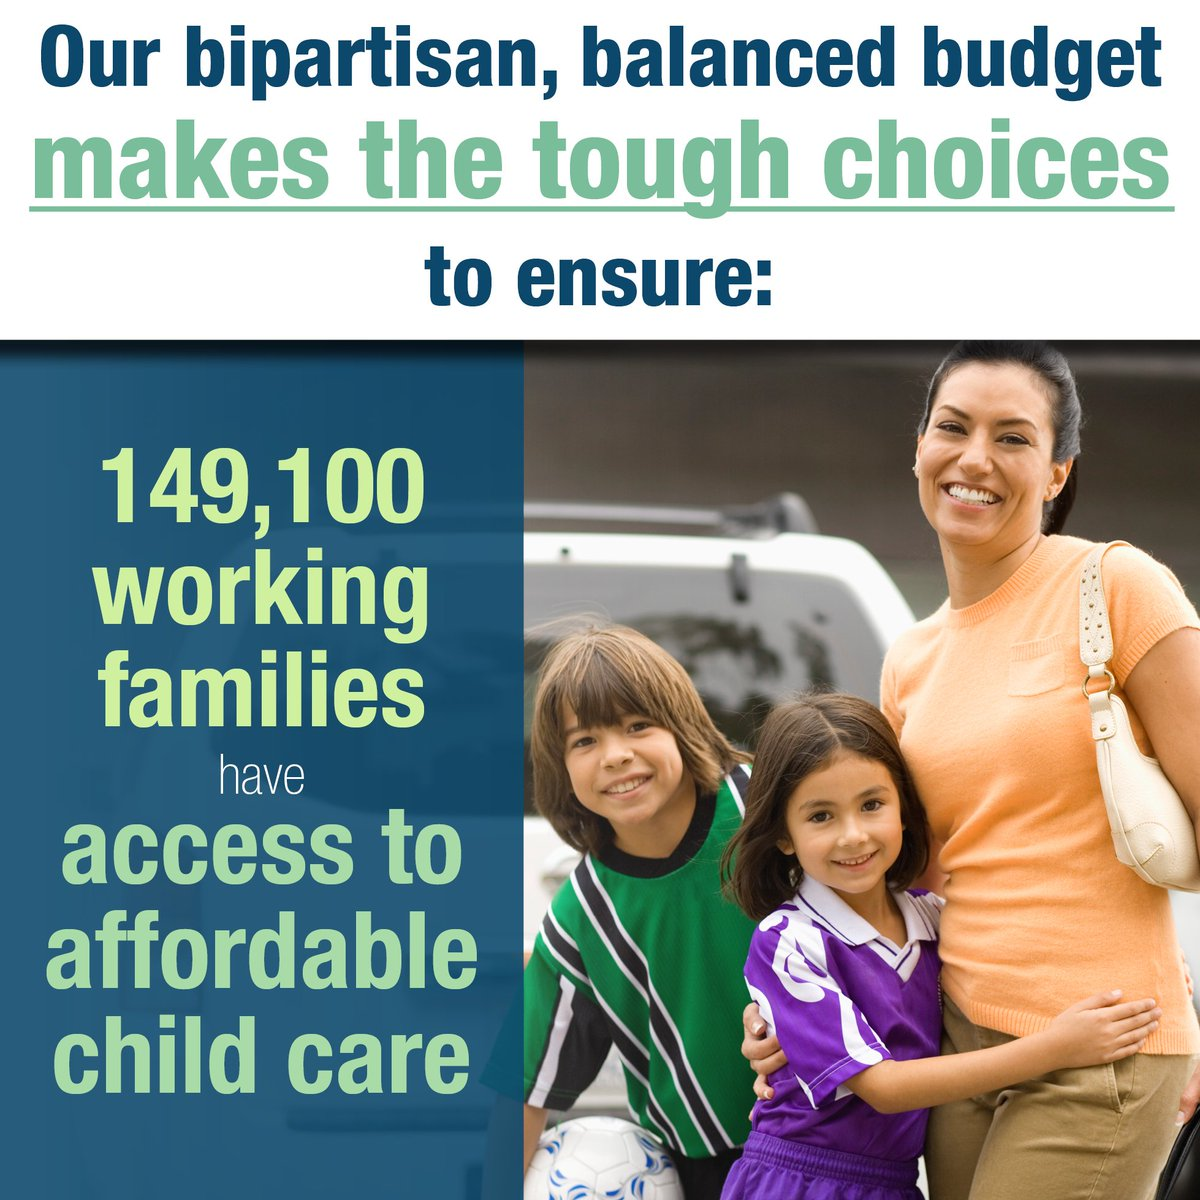 test Twitter Media - We did our jobs and enacted a bipartisan, balanced budget to ensure working families have access to affordable child care. #twill https://t.co/YecaS6kP8n